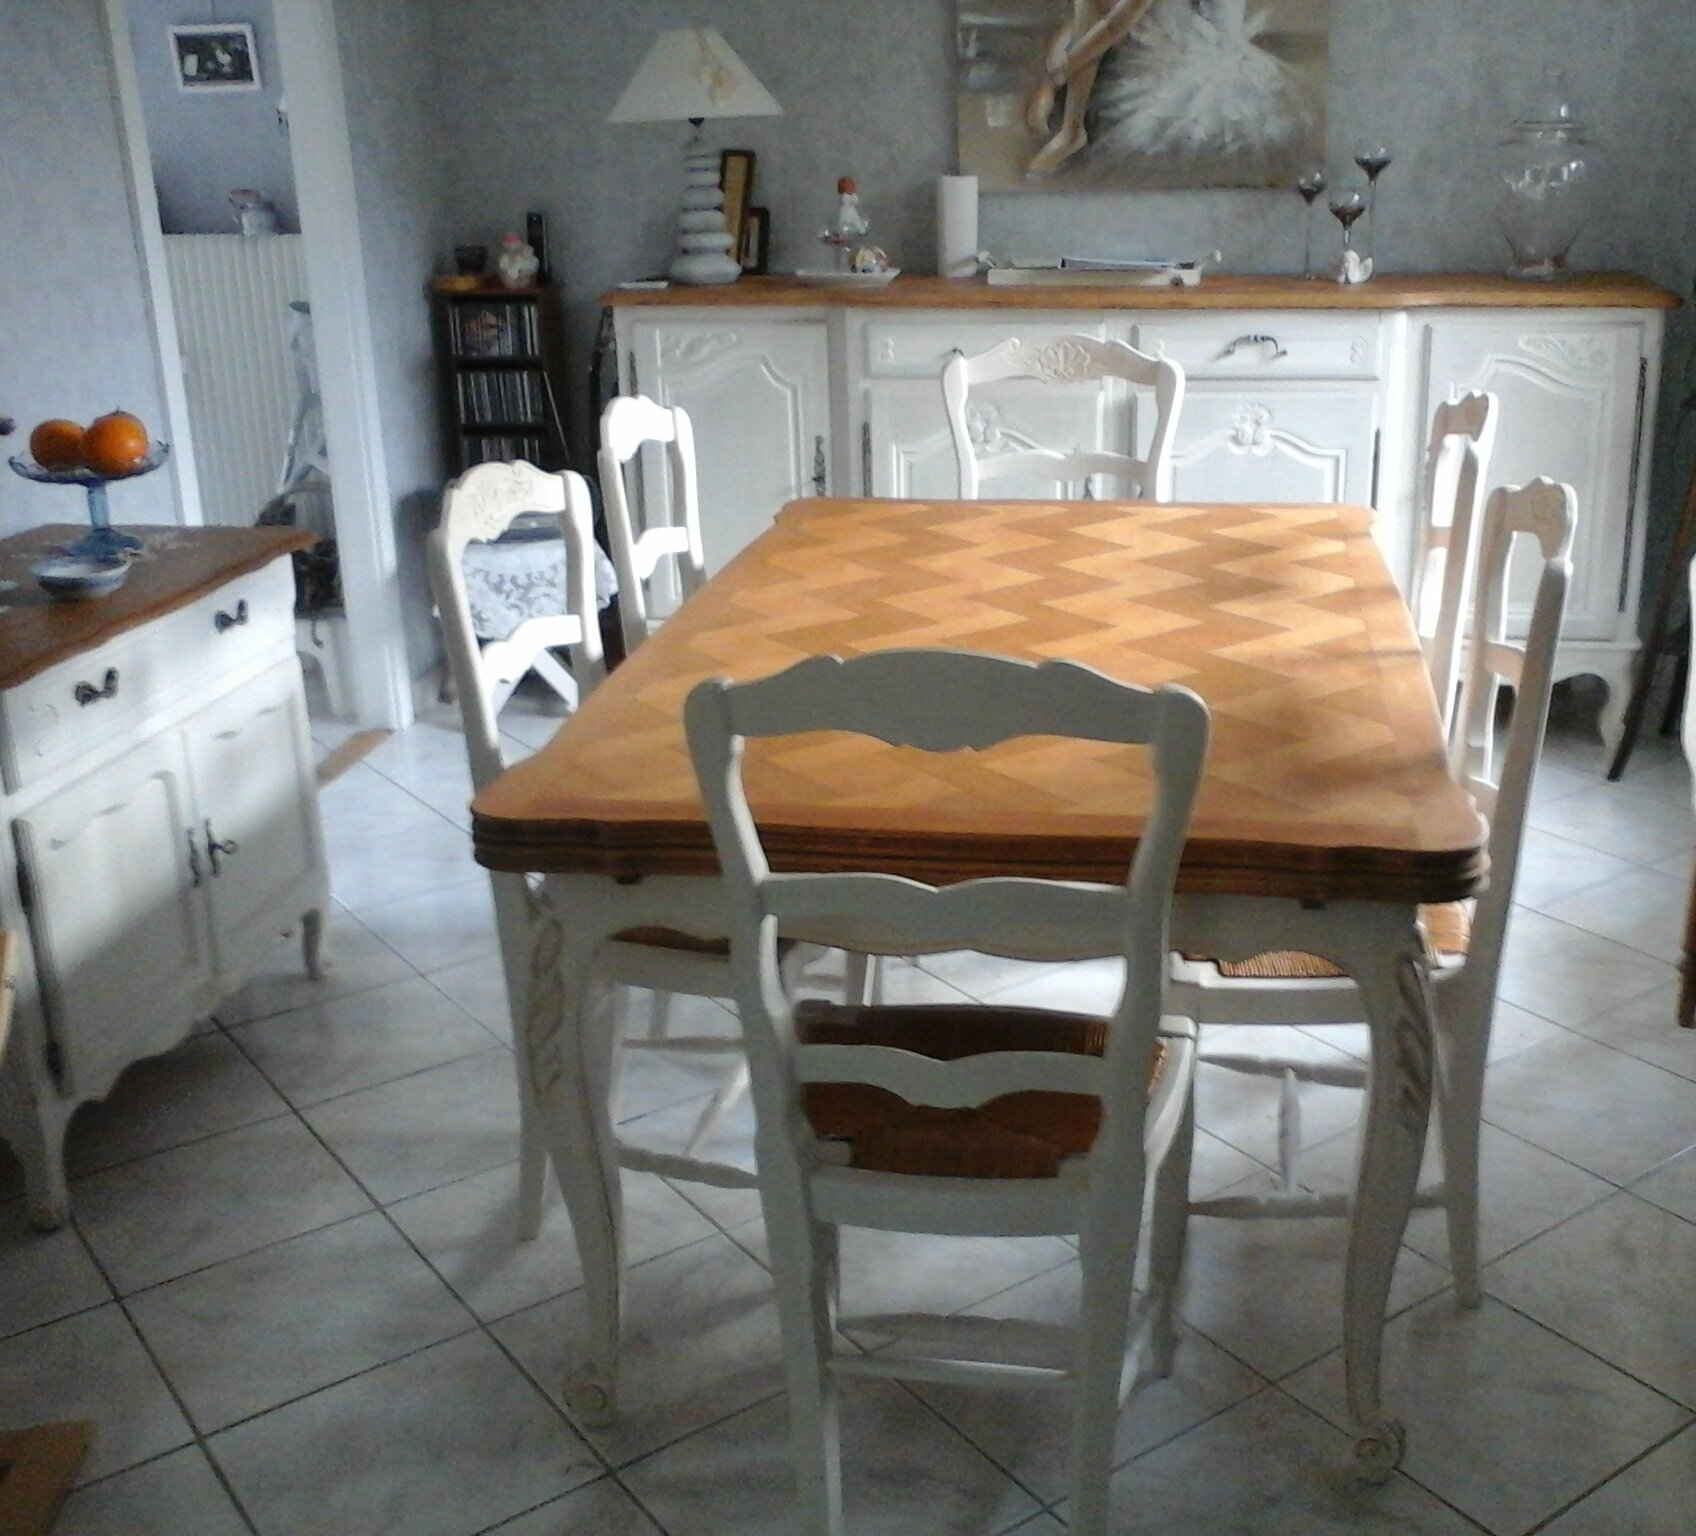 Relooker une table en ch ne ou merisier table monast re richelieu ou louis 15 pr s de nancy for Peinture acrylique meuble